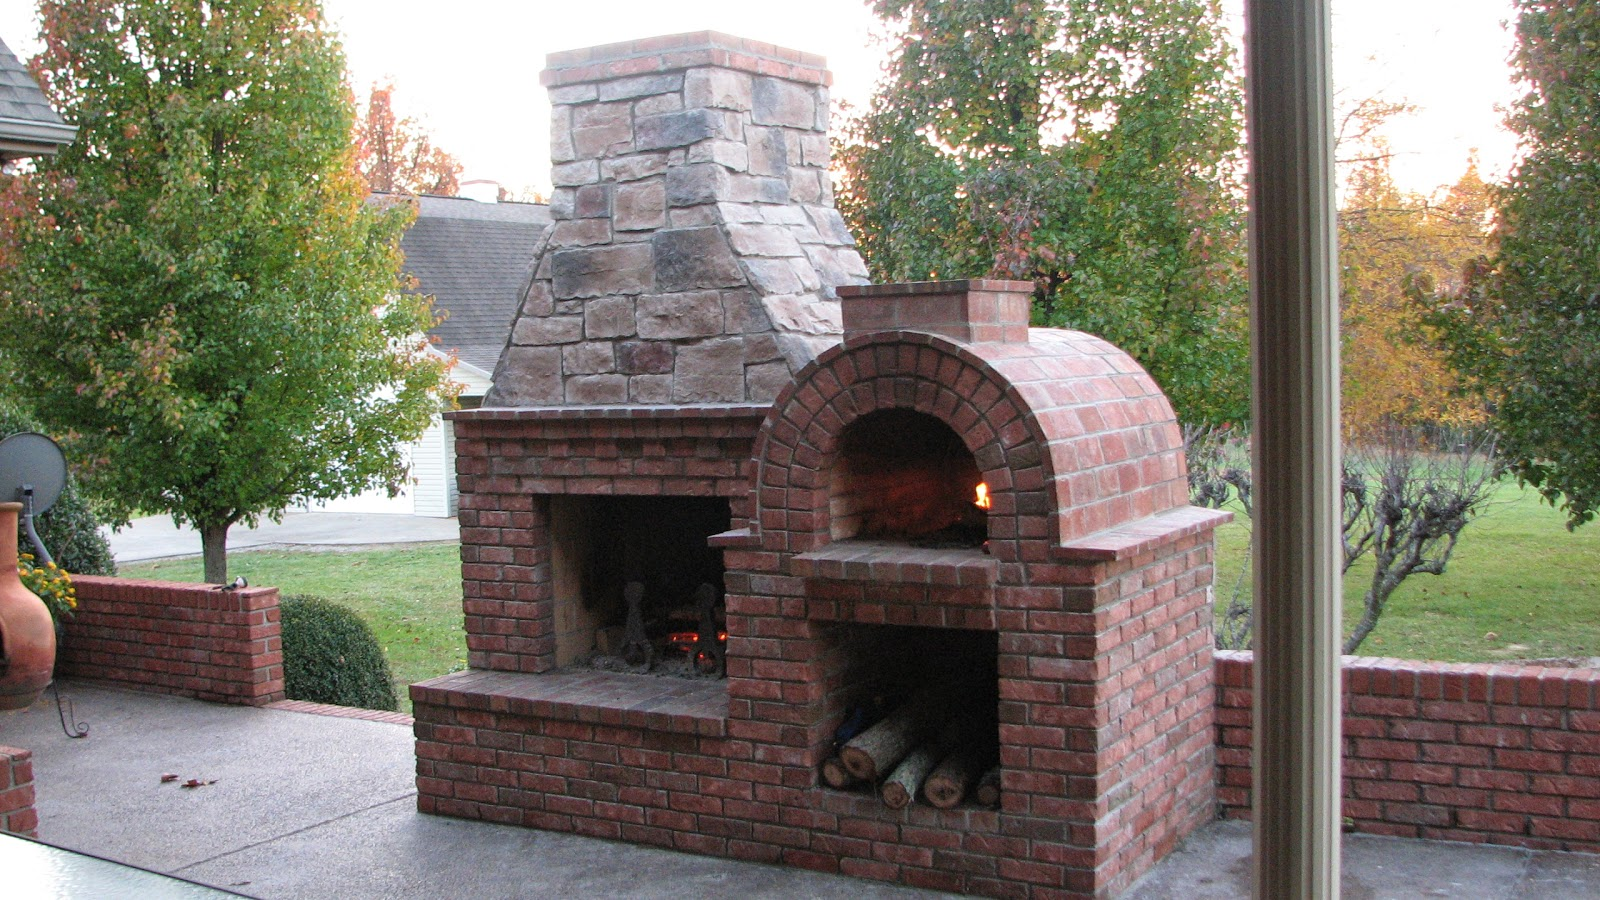 Home Wood Oven ~ Brickwood ovens